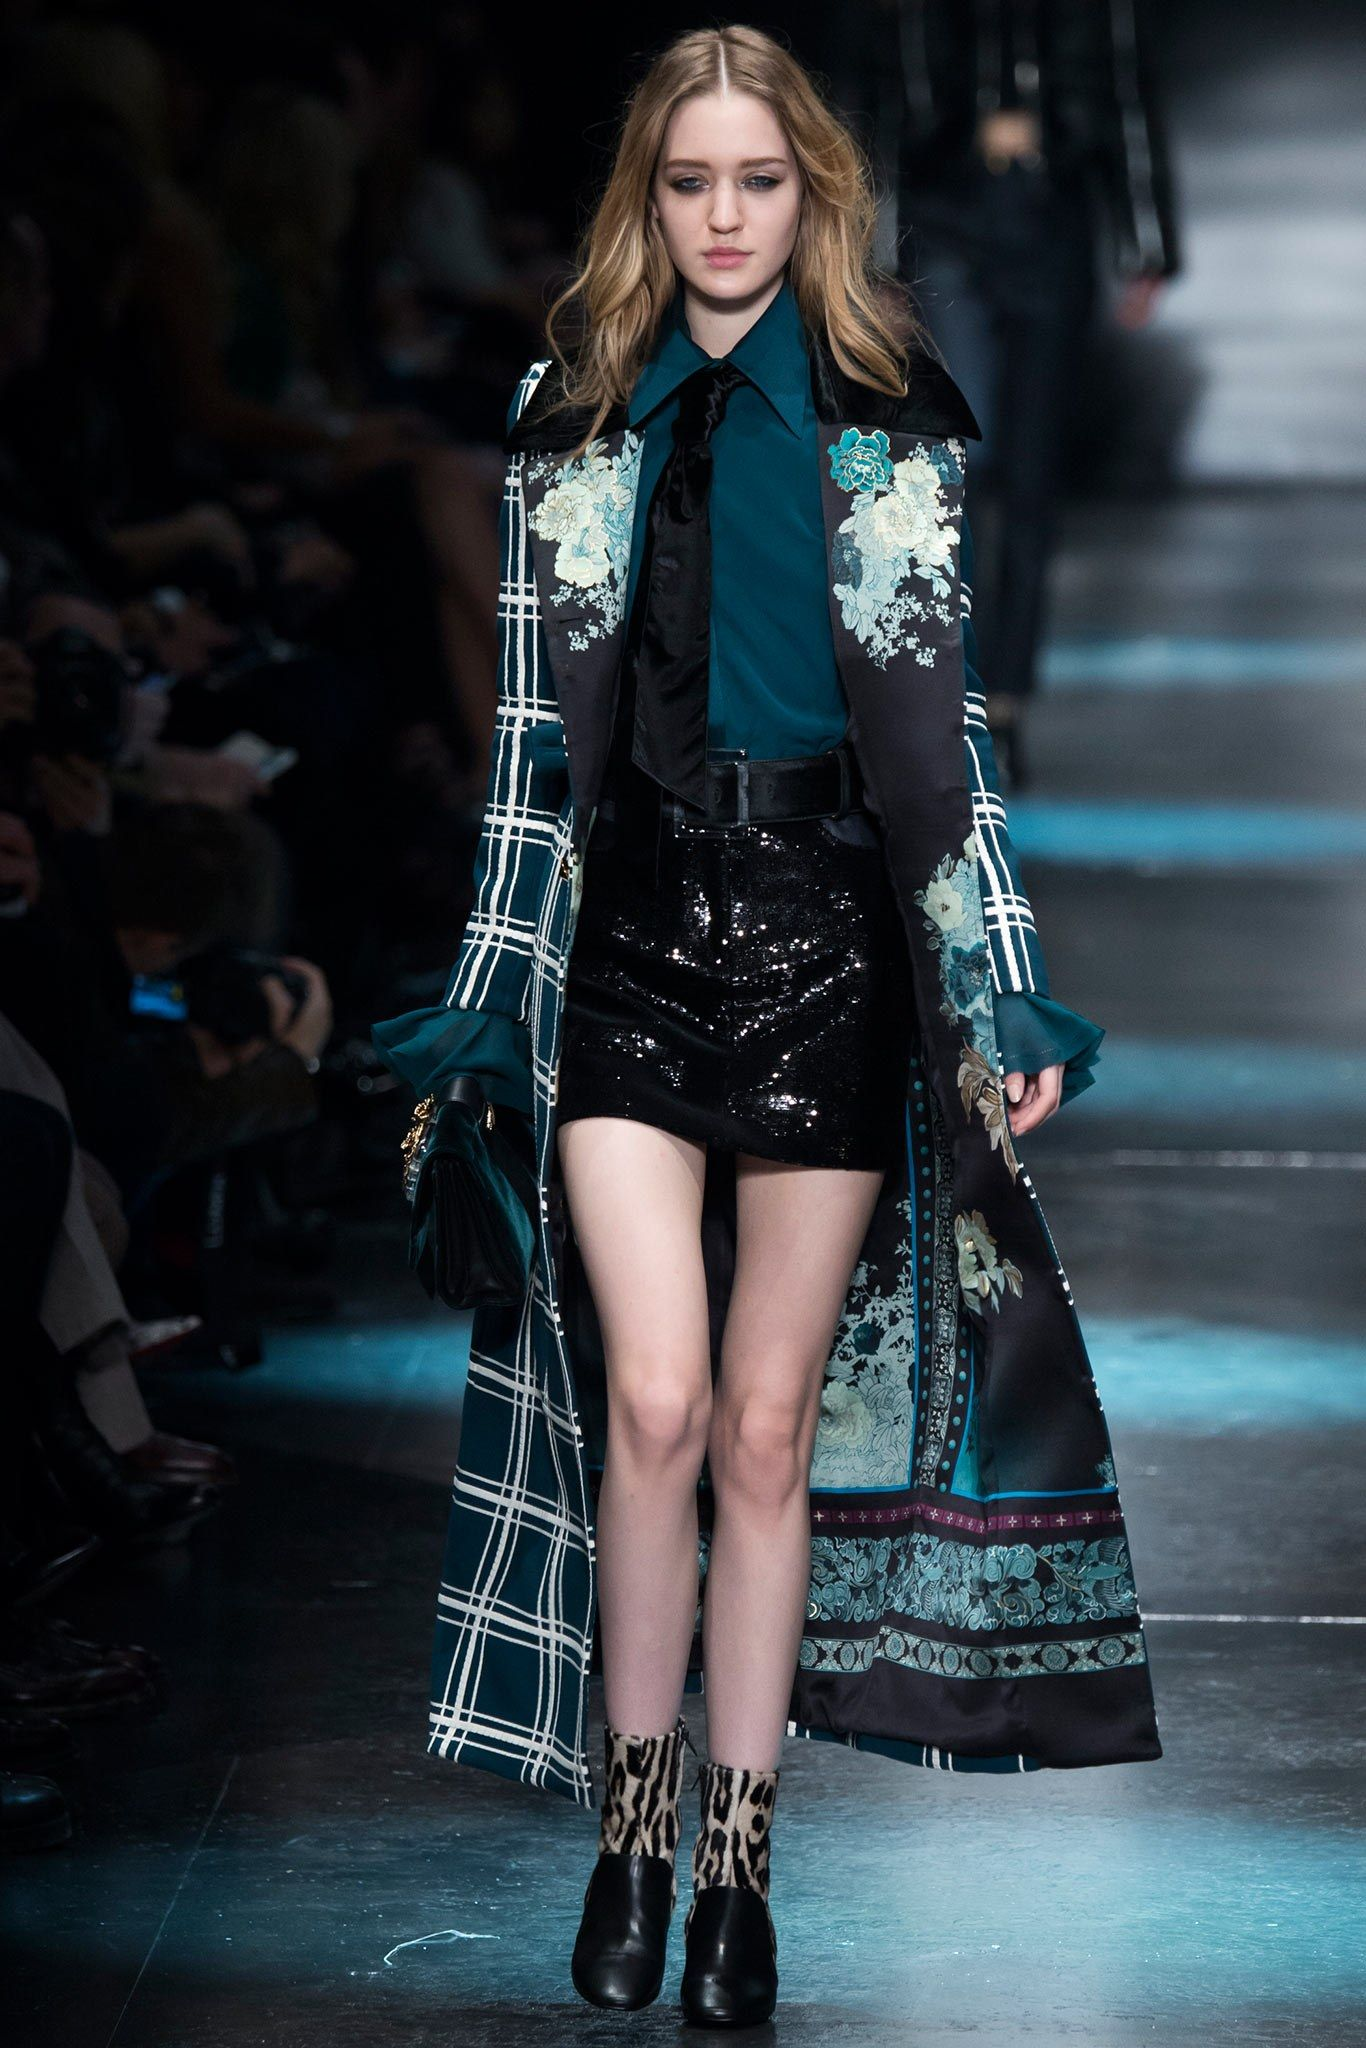 Roberto Cavalli Fall 2015 Ready-to-Wear Collection Photos - Vogue